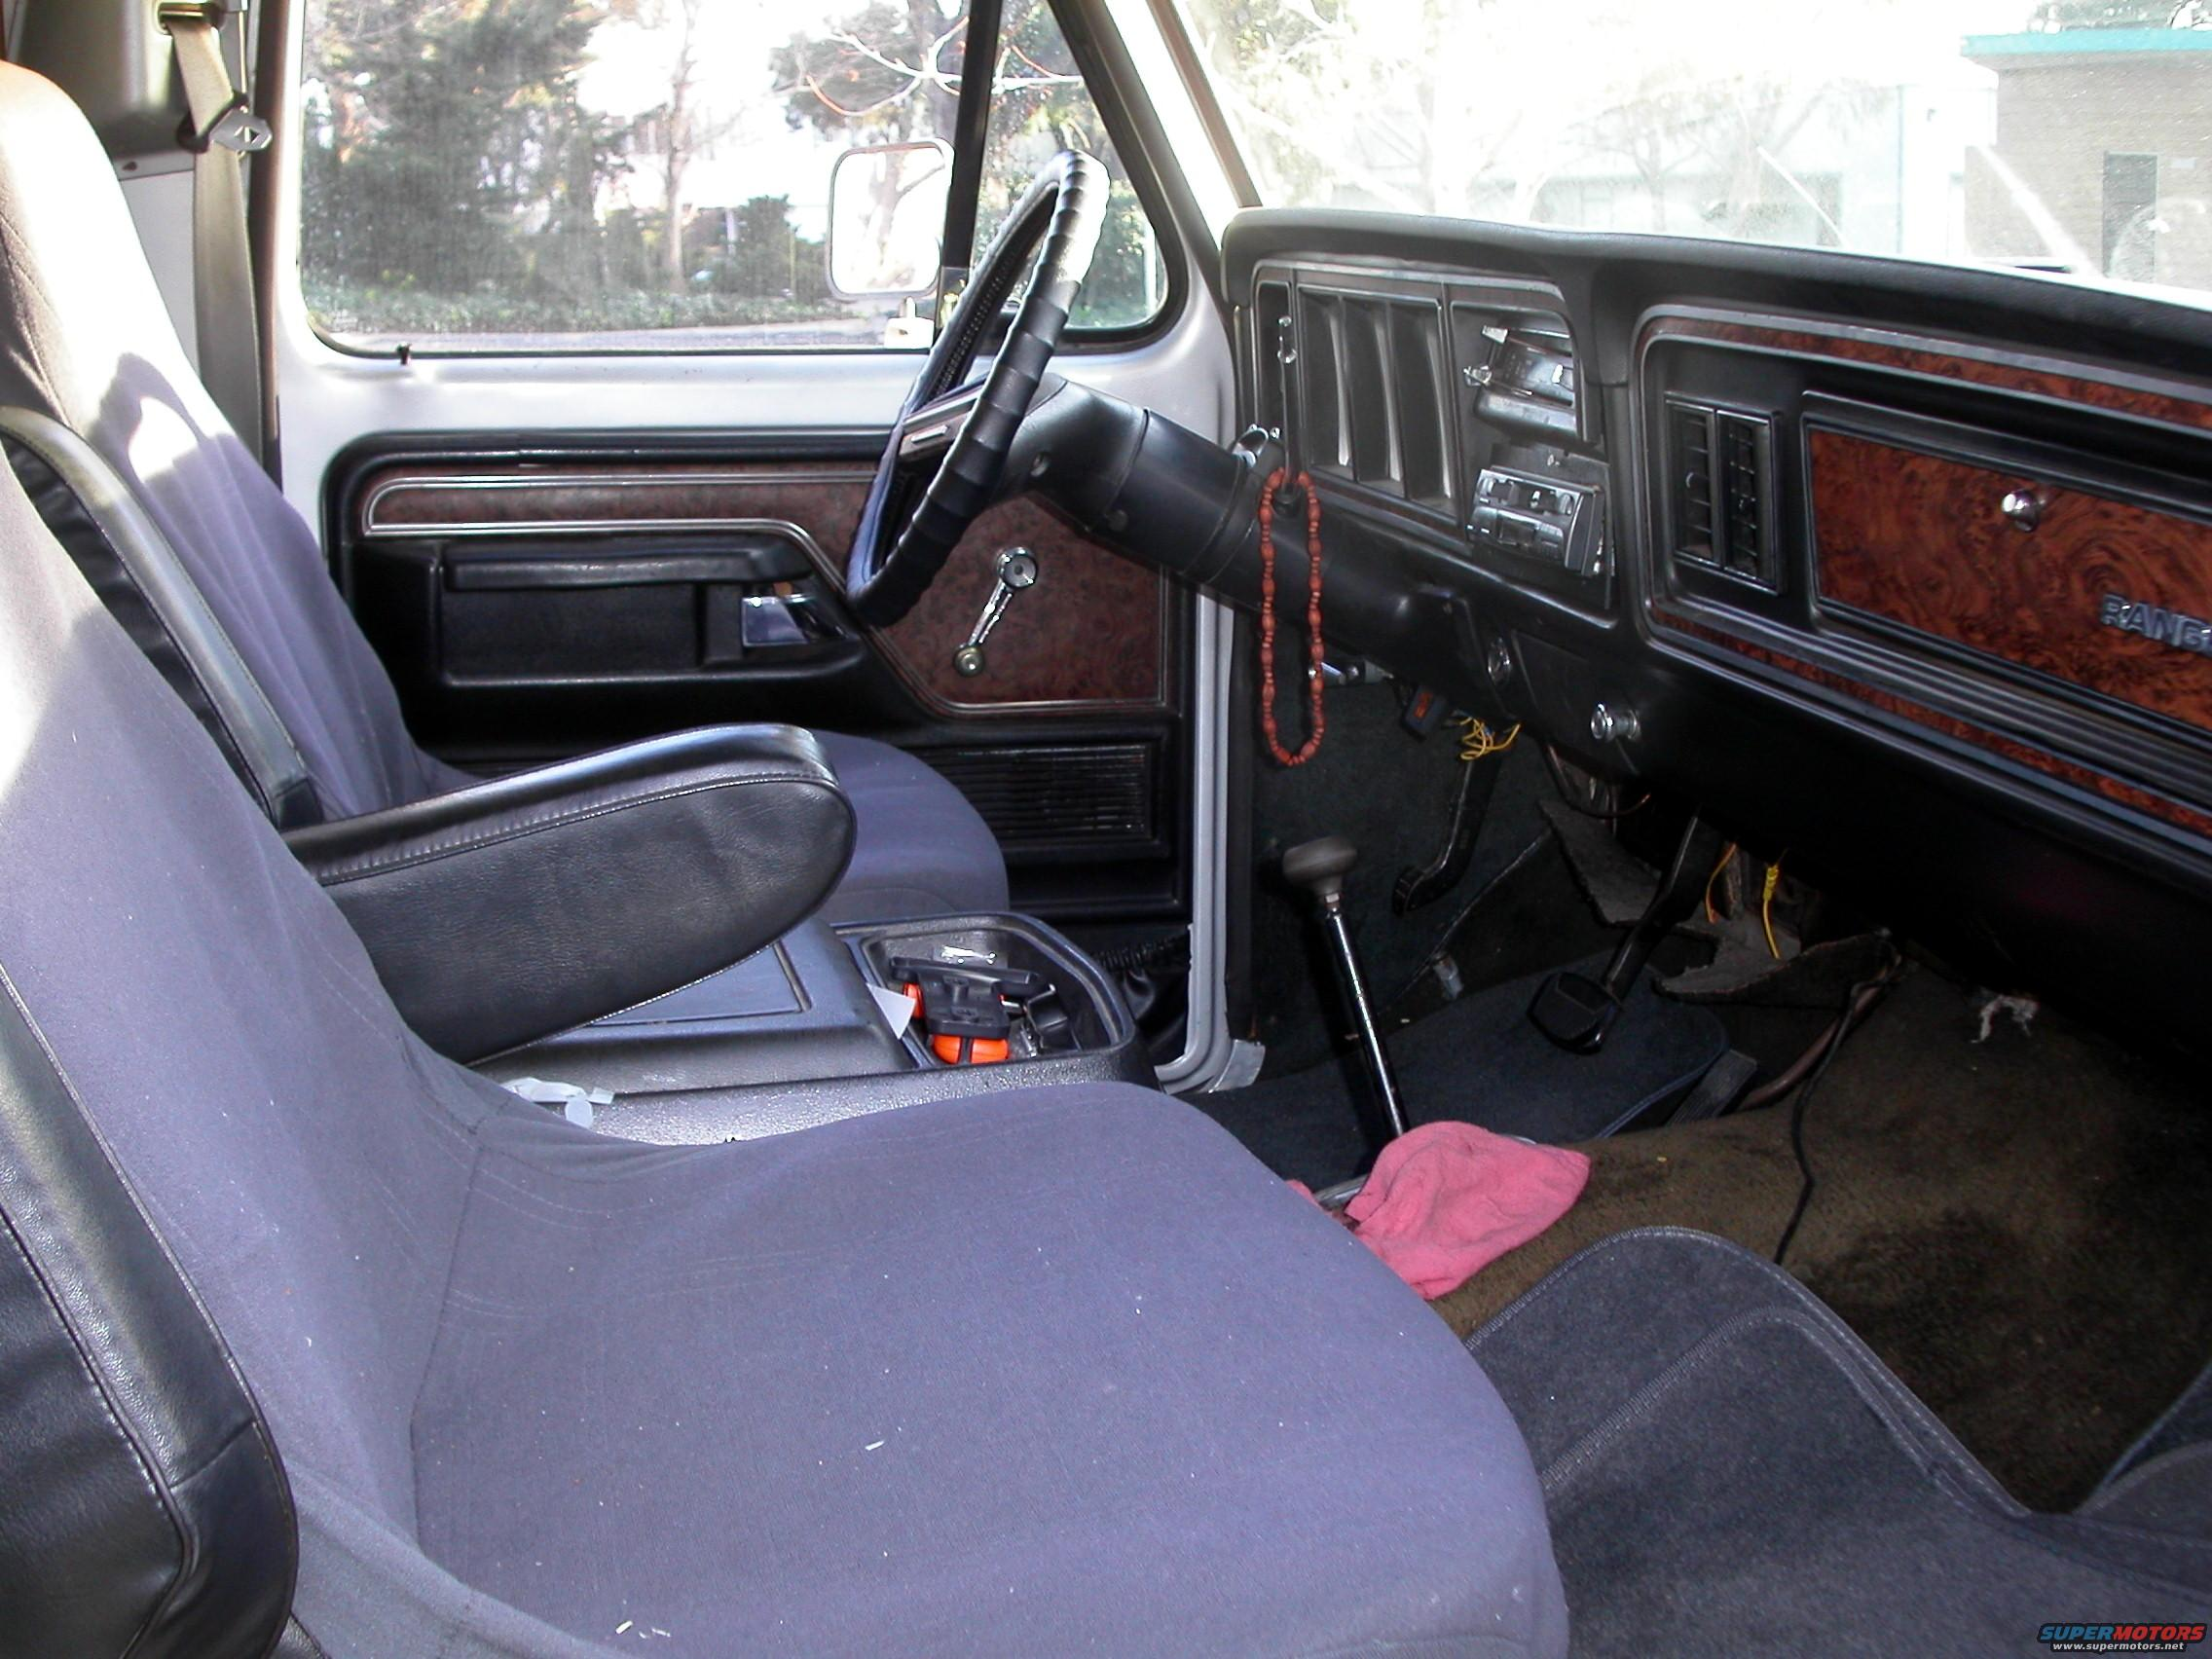 1979 Ford Bronco trailer special bronco picture ...